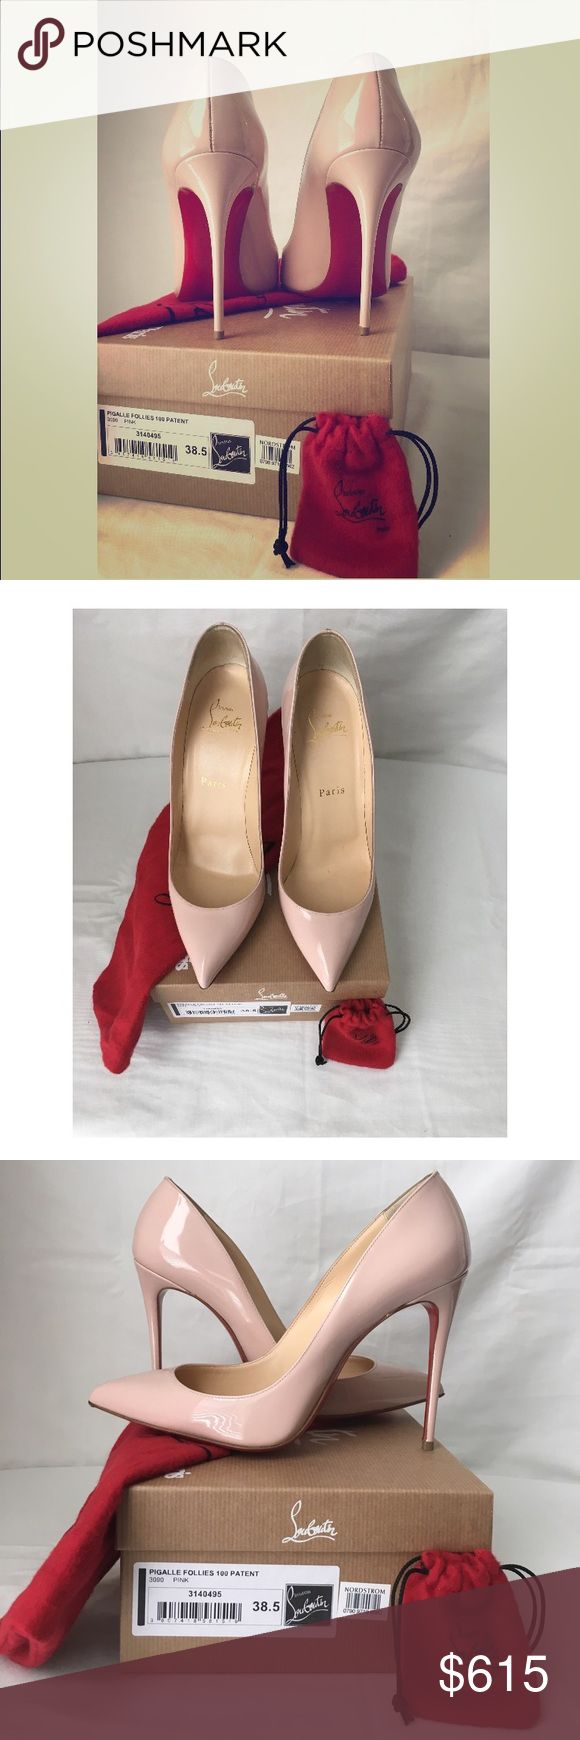 Christian Louboutin Pumps Christian Louboutin Pump 100mm, 38.5, Color Pink, Patent Leather, Red Bottom, 4 Inch Heel, Style Pigalle Follies, Runs Small, Normal Wear at Bottom, Worn Twice, Box & Dust Bag Christian Louboutin Shoes Heels